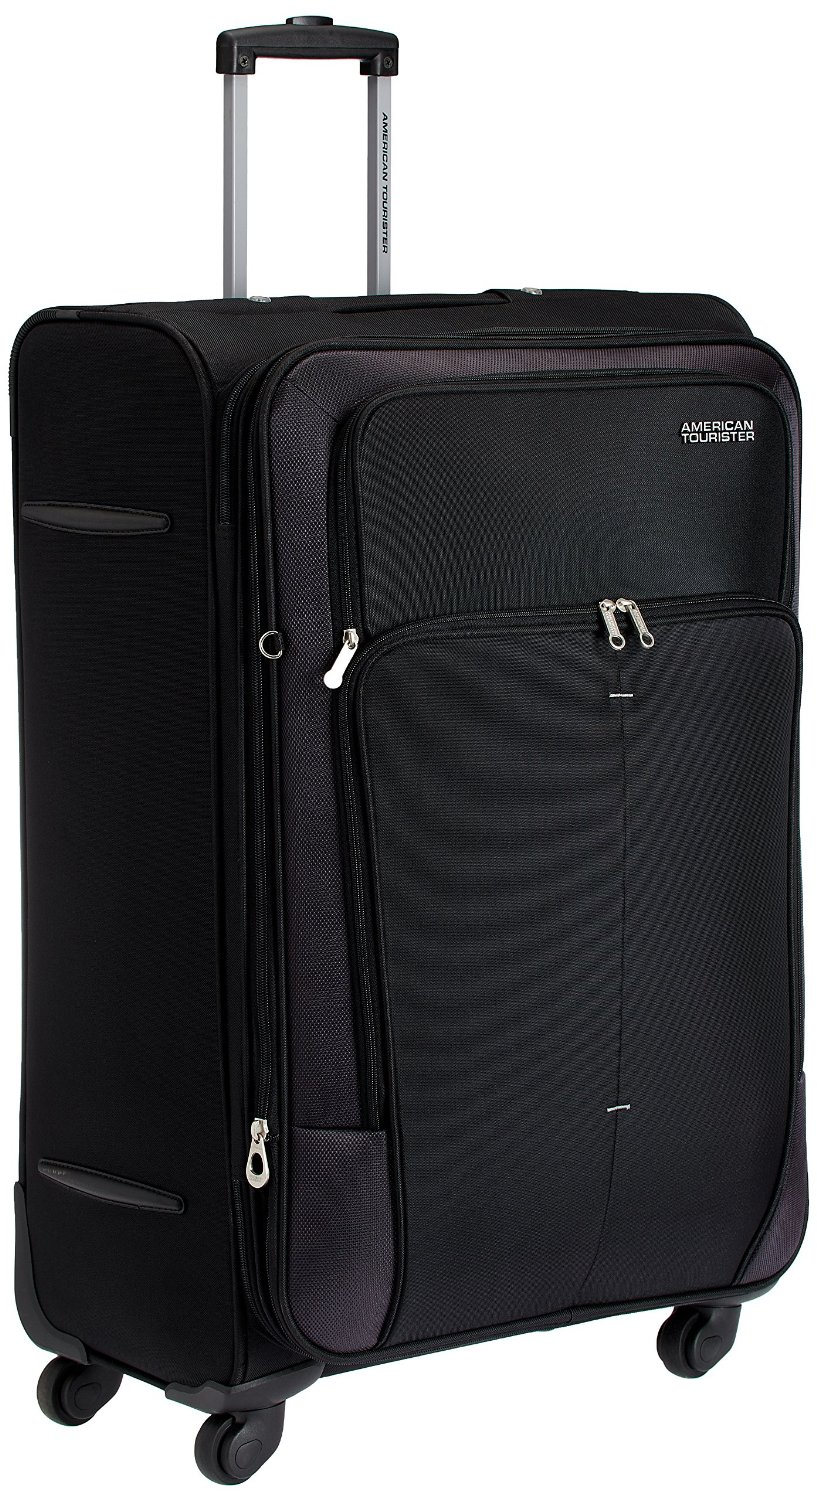 American Tourister Bags Wallets Luggage American